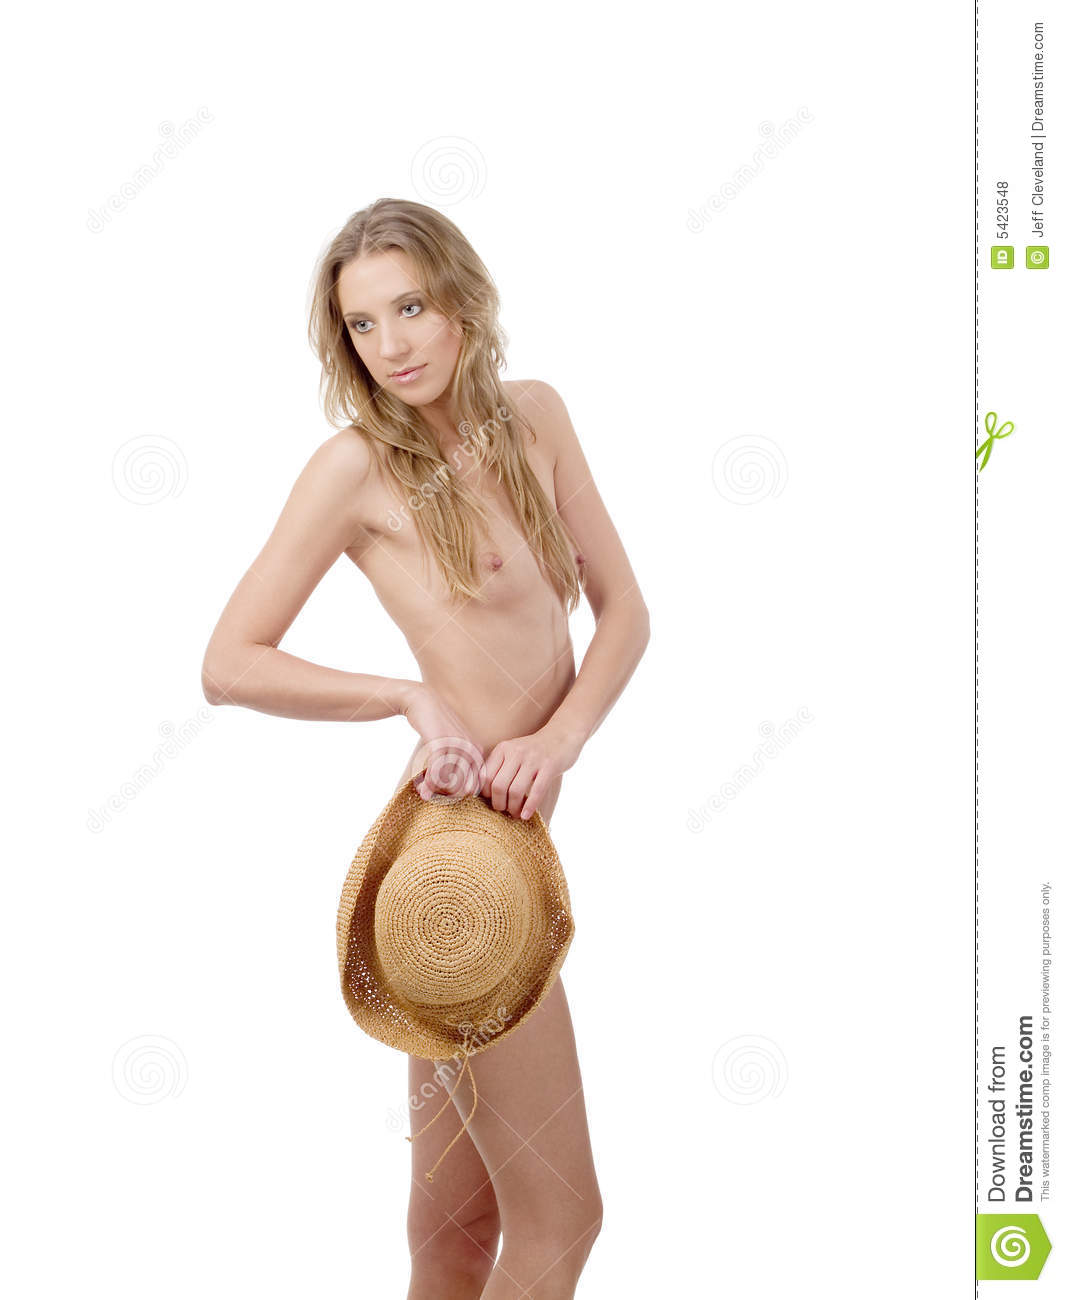 Young Woman Topless With Straw Hat Covering Lower